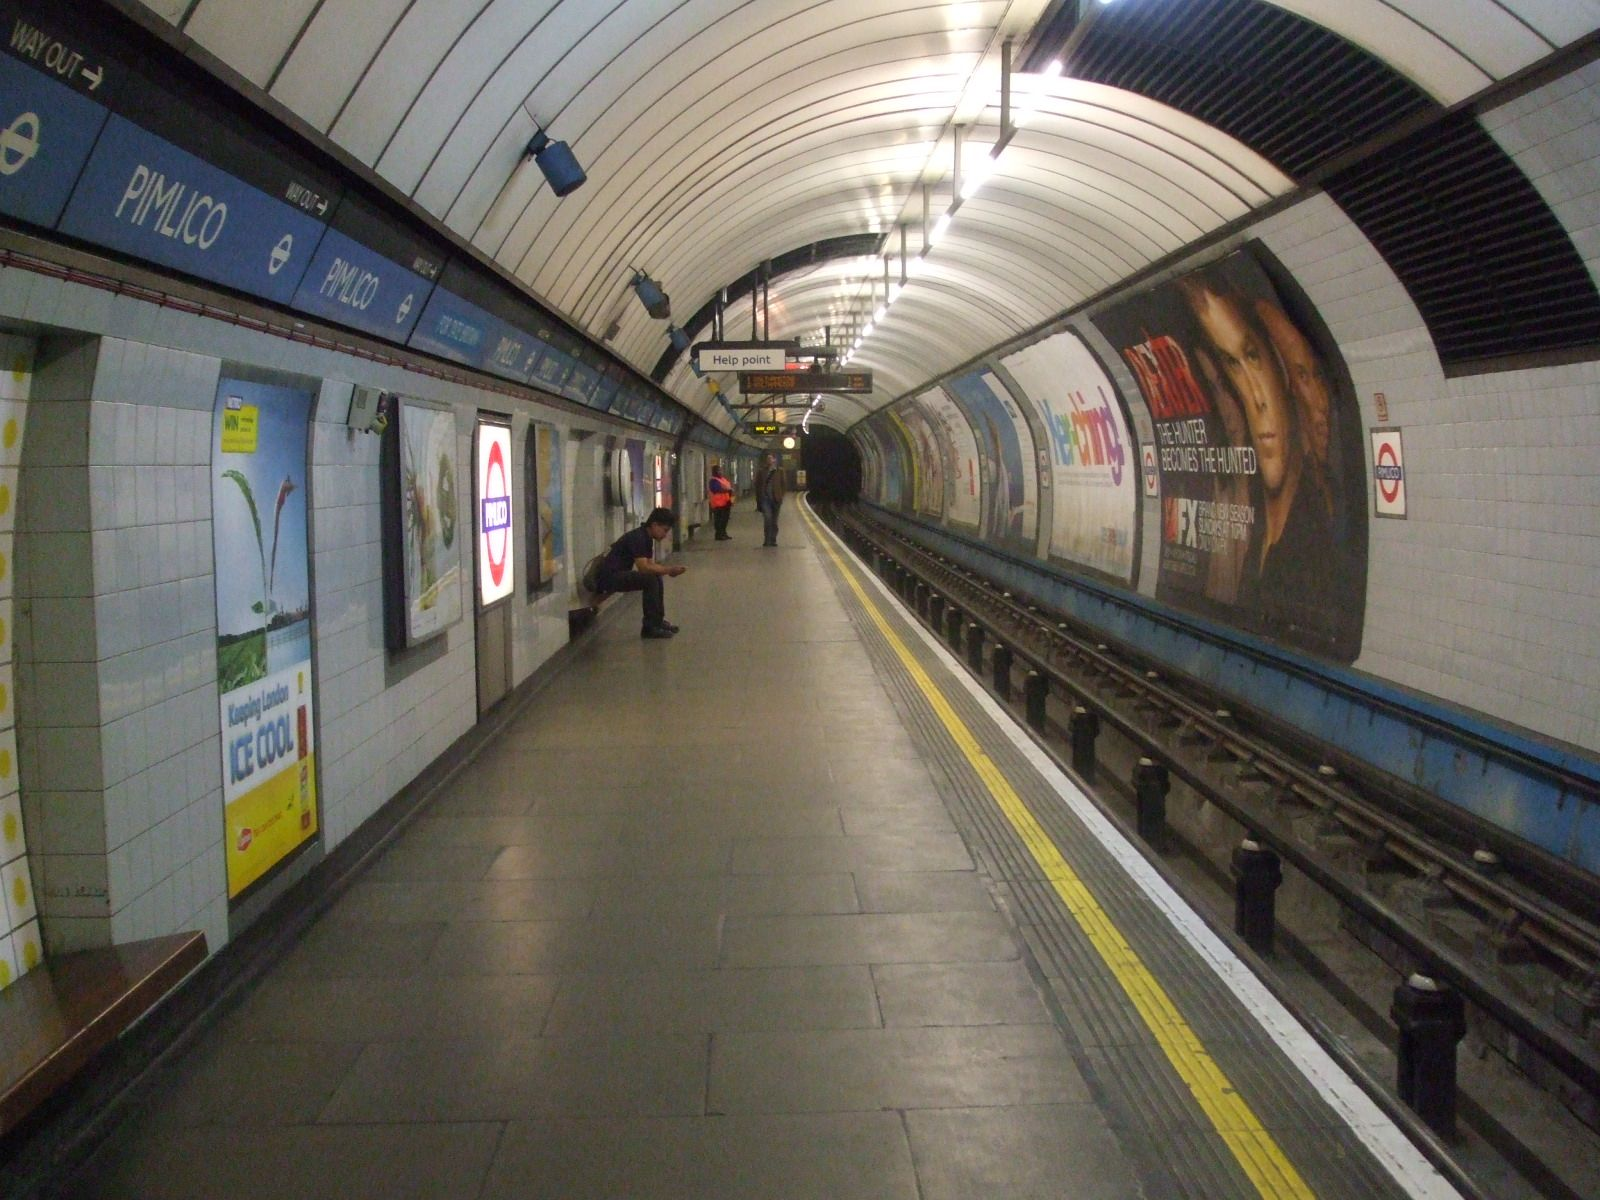 Pimlico_station_northbound_look_south